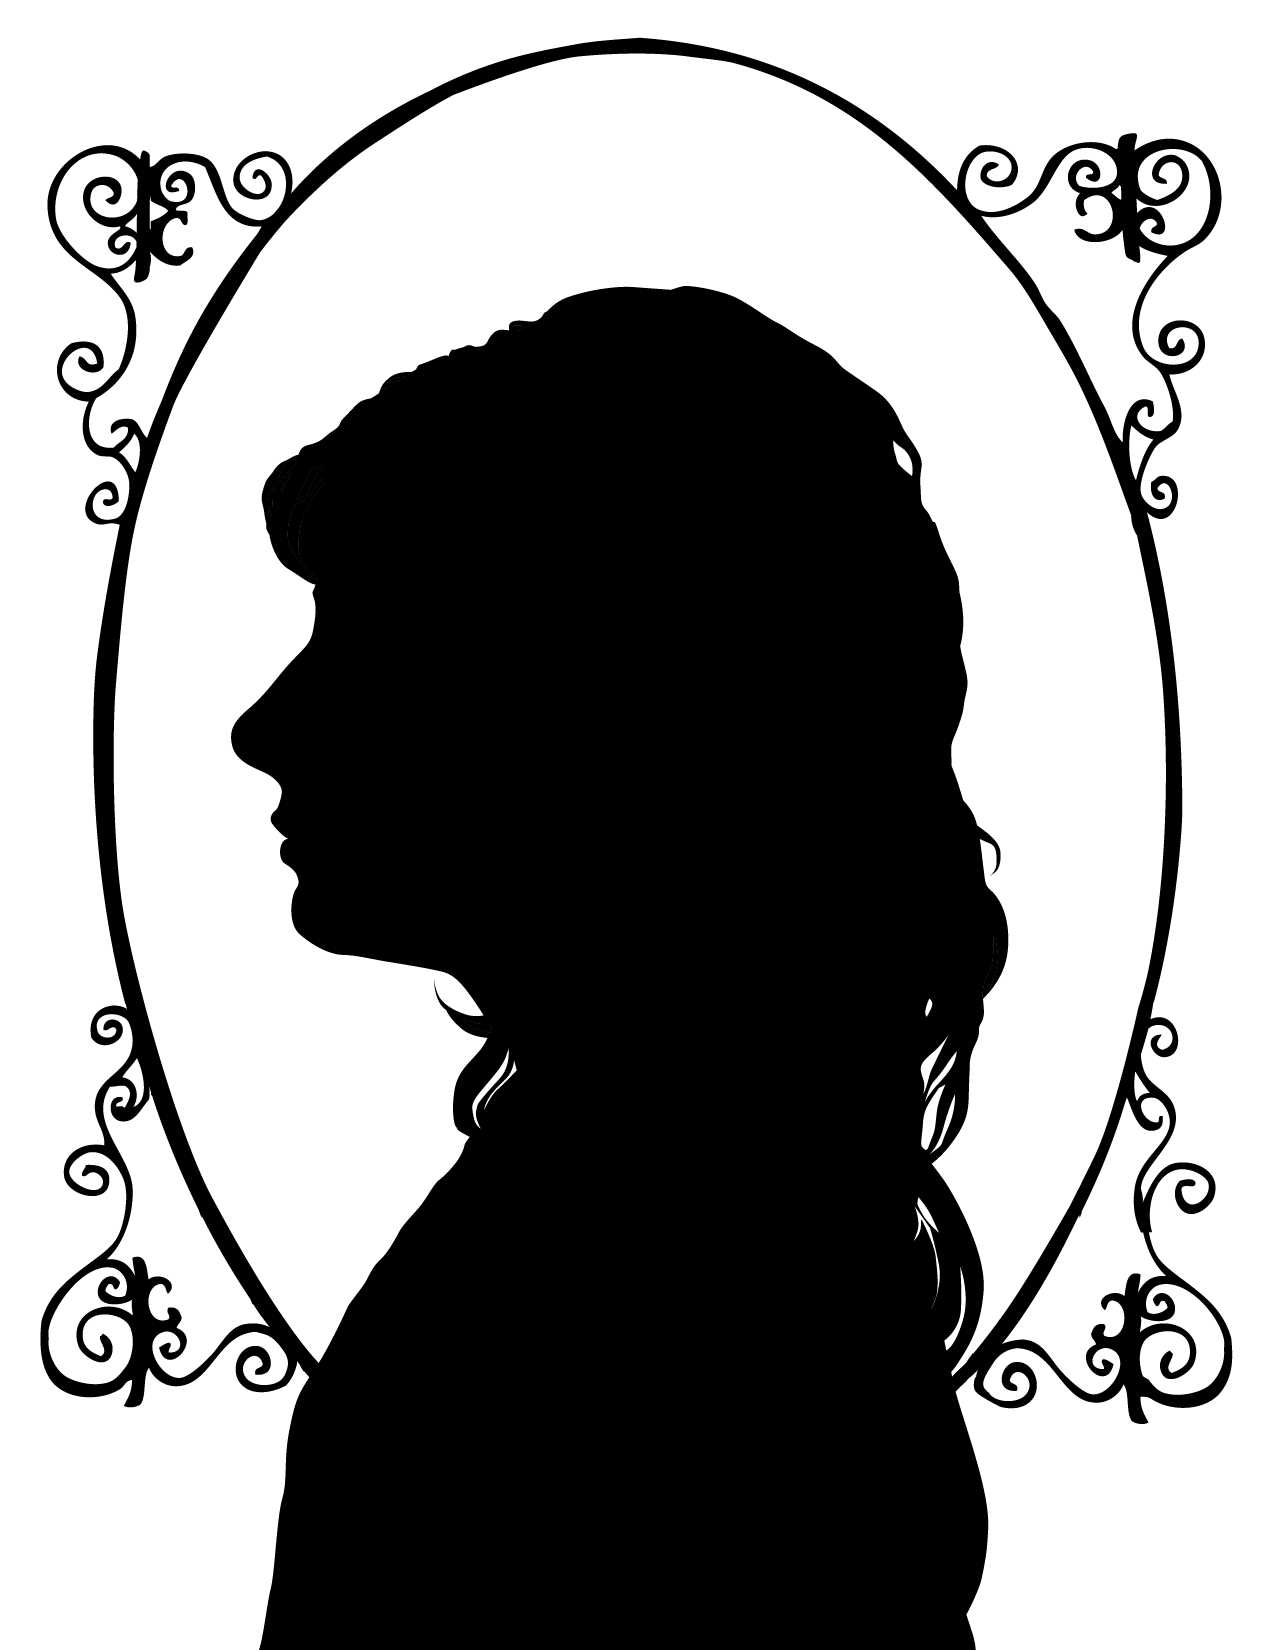 calico_silhouettes-final-2017_set_C_Shelby.png